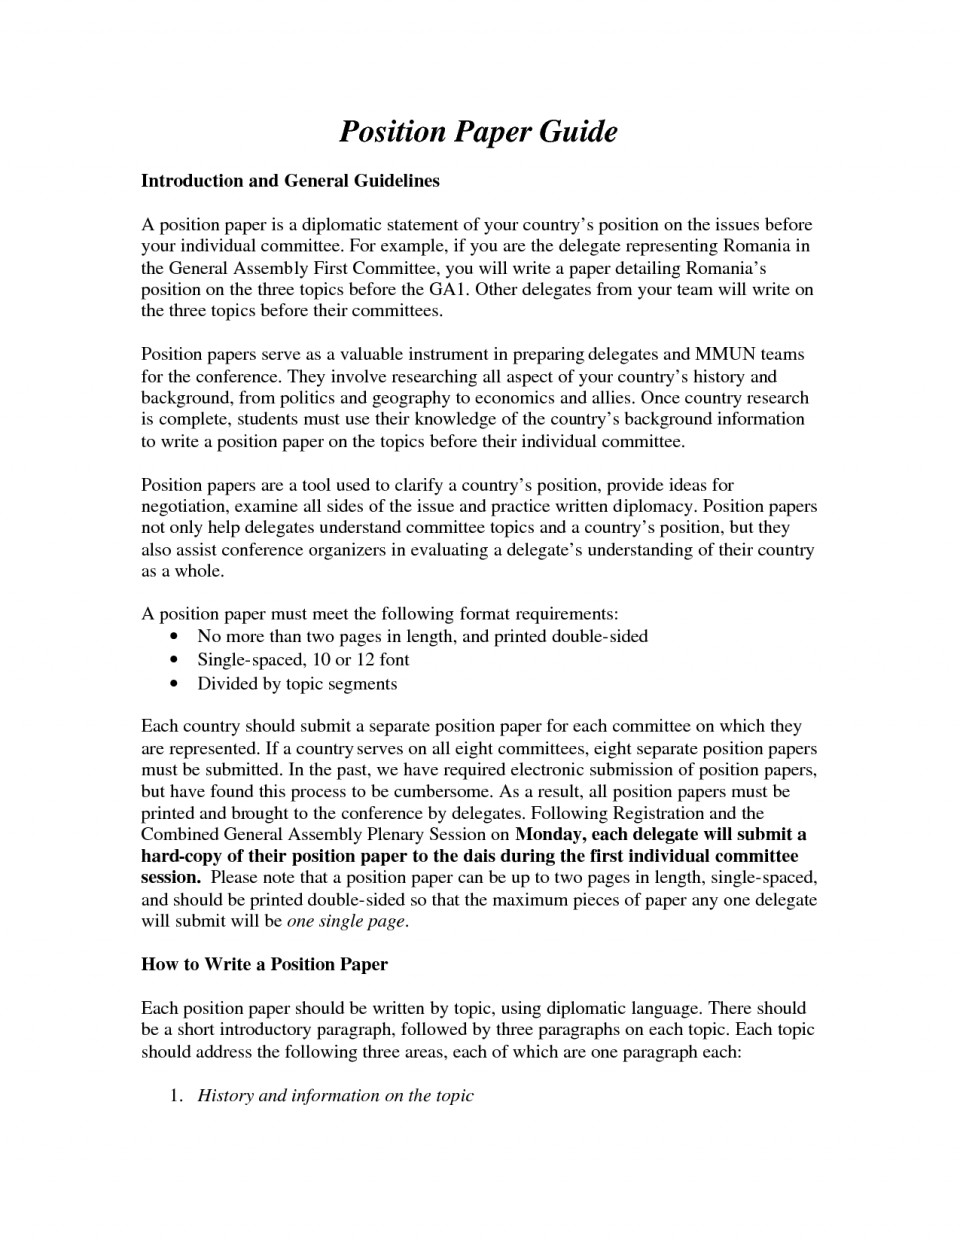 011 Research Papers Topics Paper Proposal Example 343593 Phenomenal For High School Students In Management 960